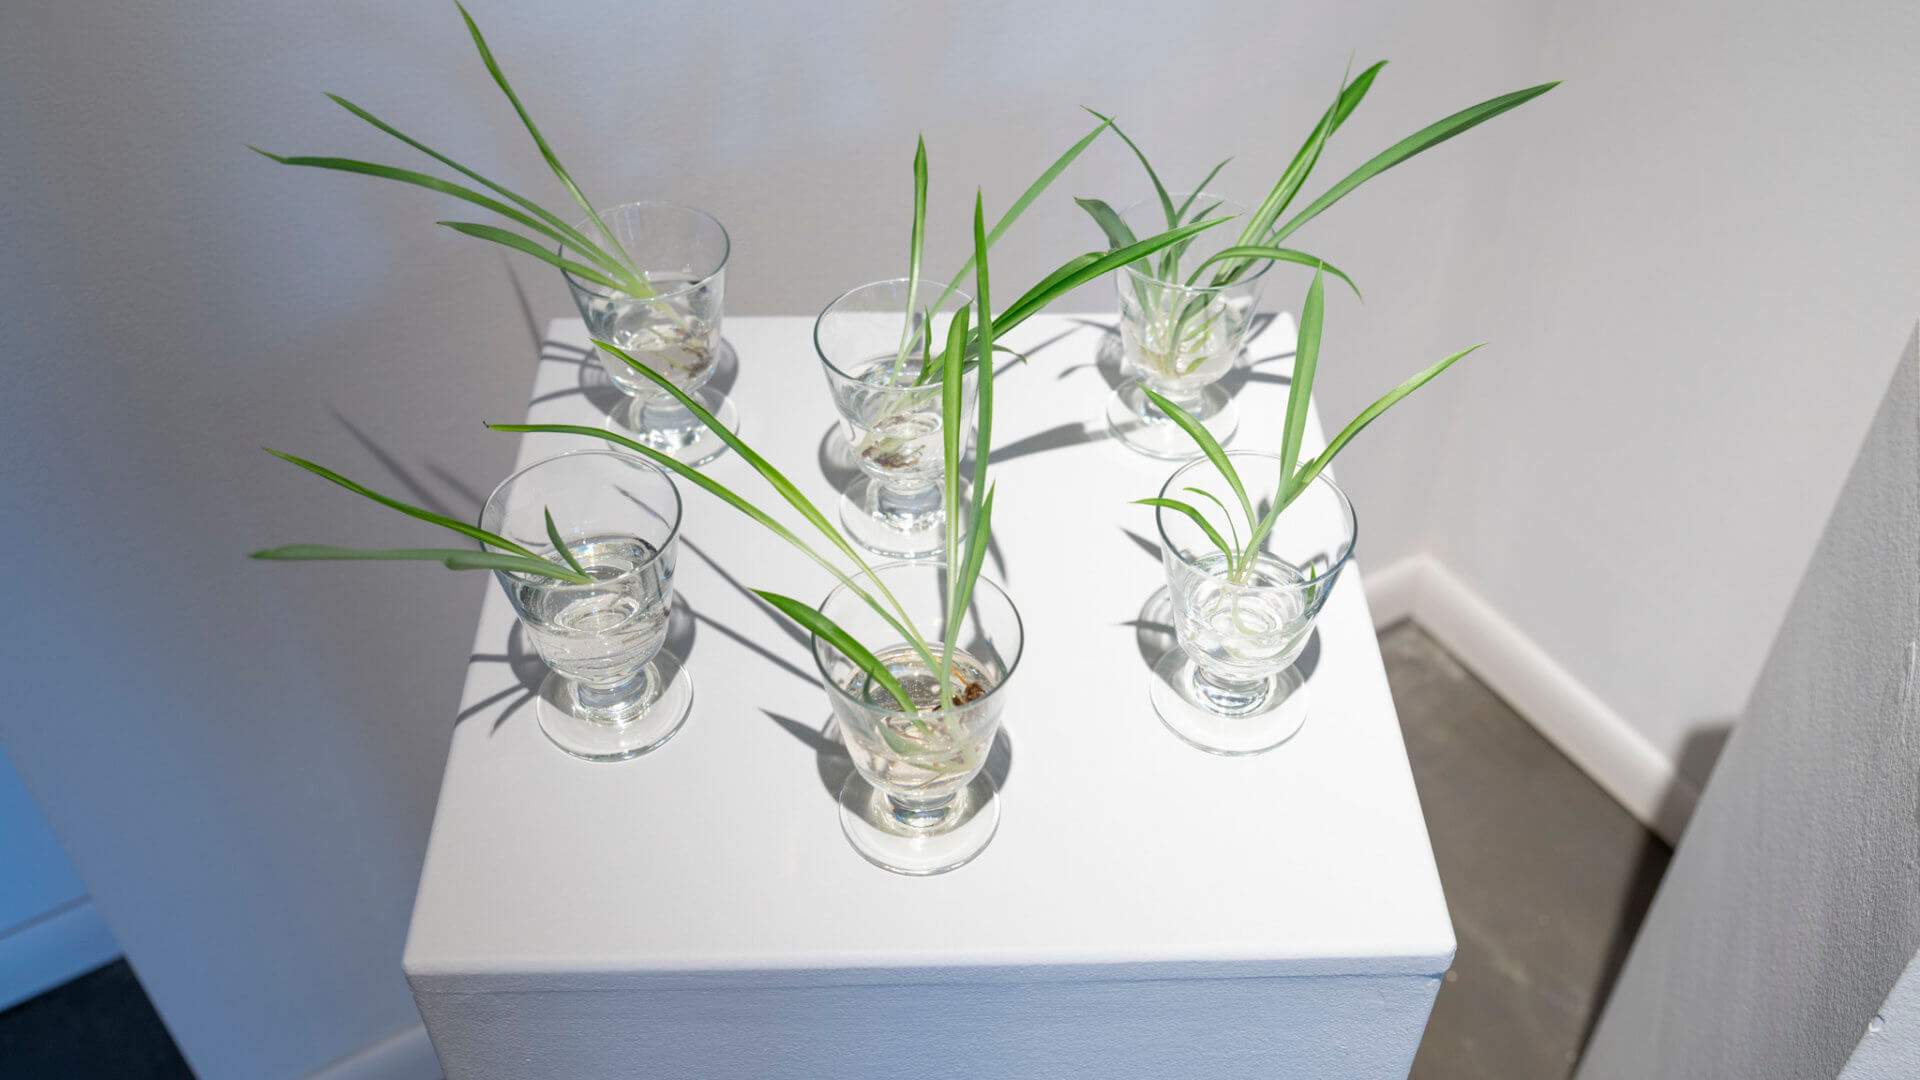 Free plants for gallery visitors. Part of the exhibition Futures Abundant/Futures Barren by April Dean. Image credit: Sarah Fuller.